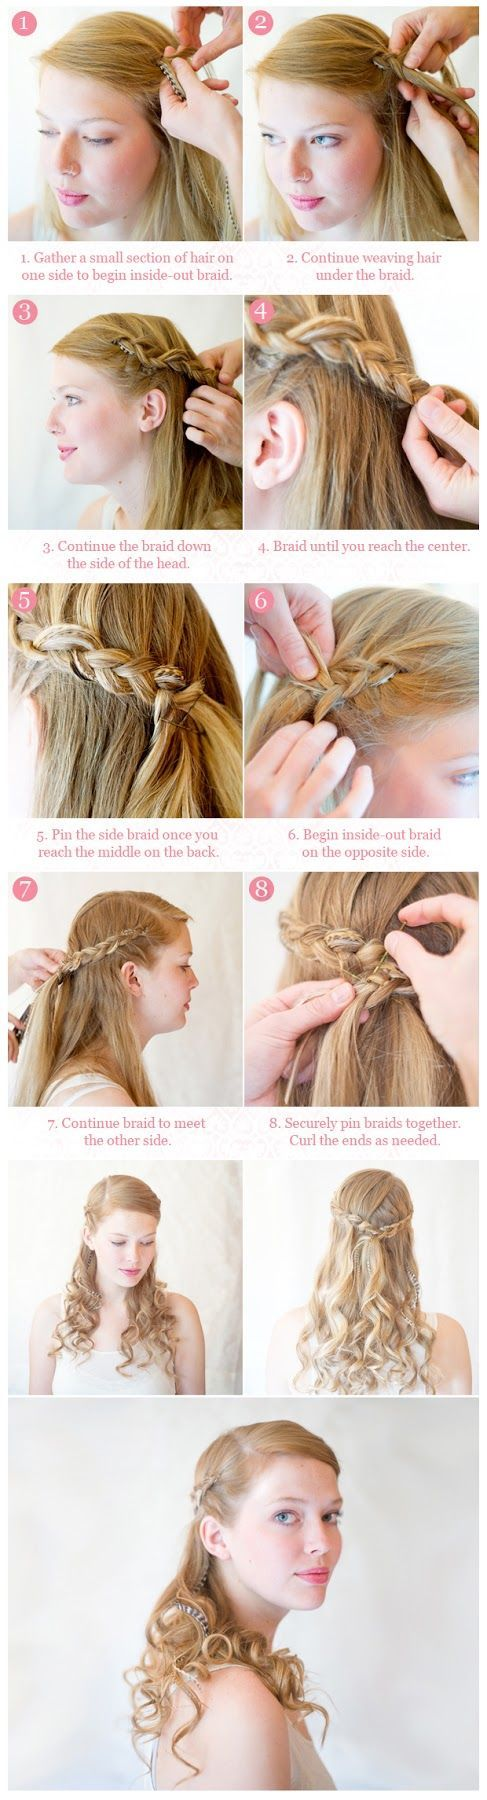 73 best hair ideas images on pinterest hair ideas hairstyle ideas 15 very amiable and very simple diy hairstyle tutorials solutioingenieria Image collections